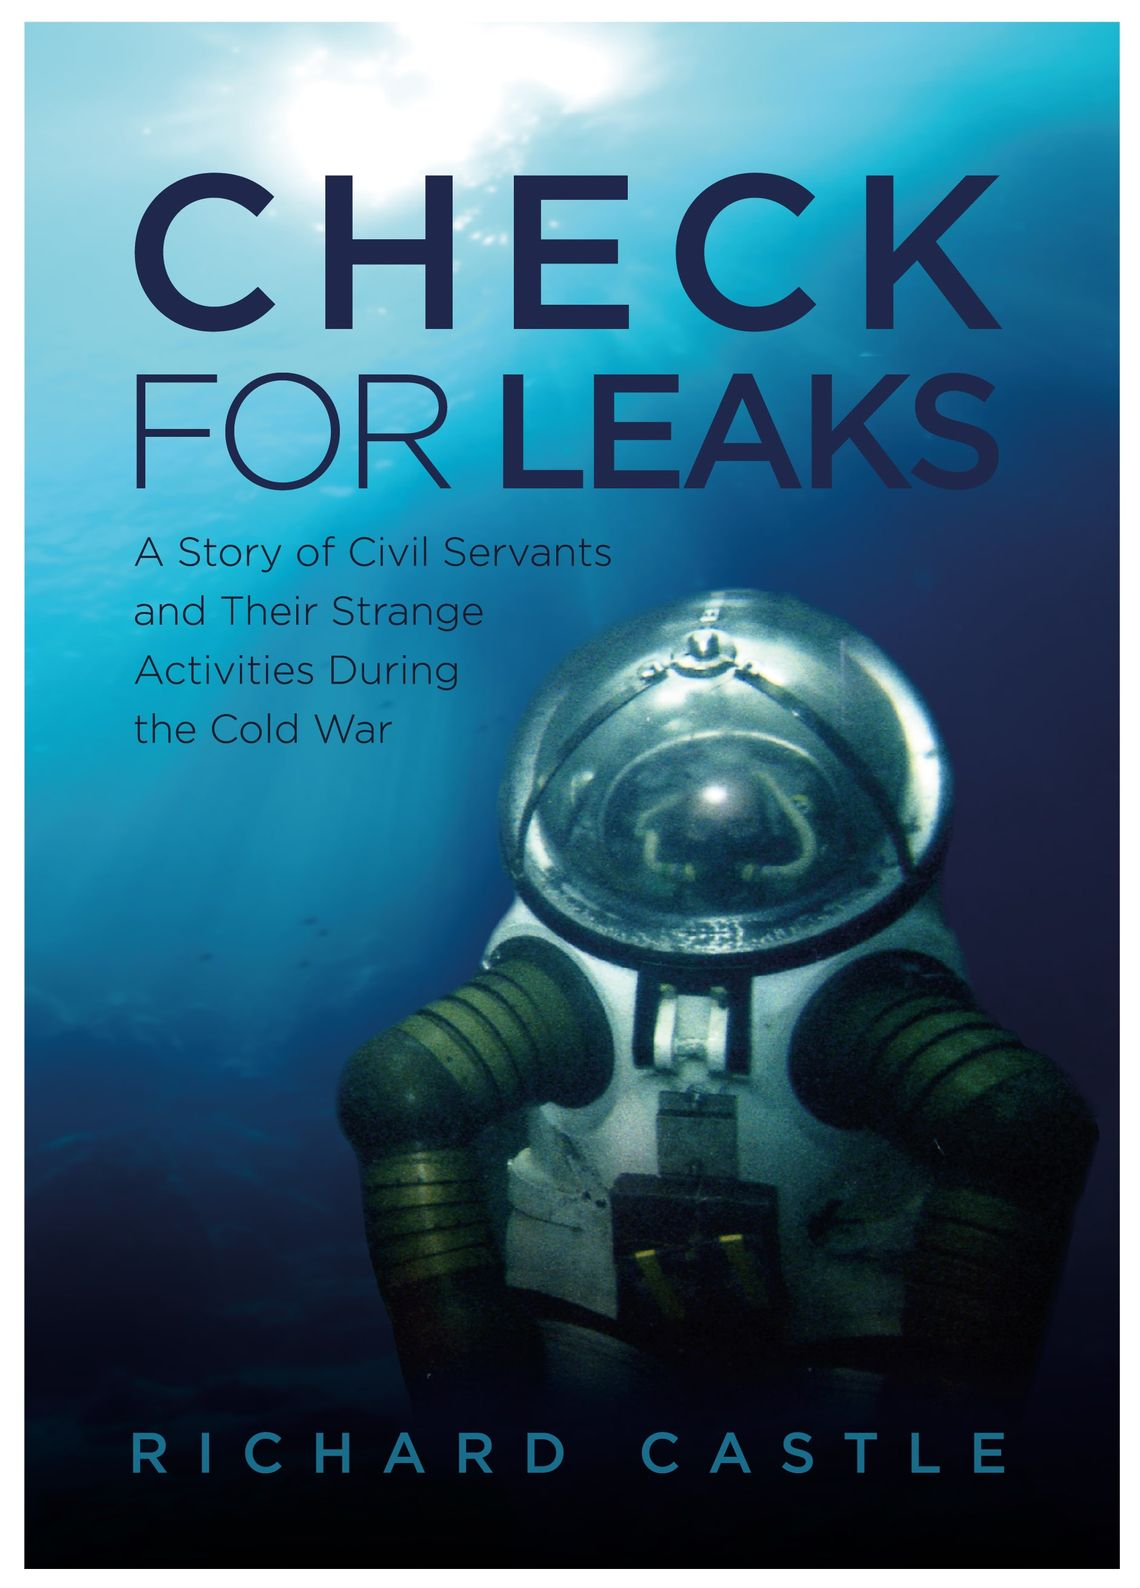 Book release: 'Check for Leaks' by Richard Castle